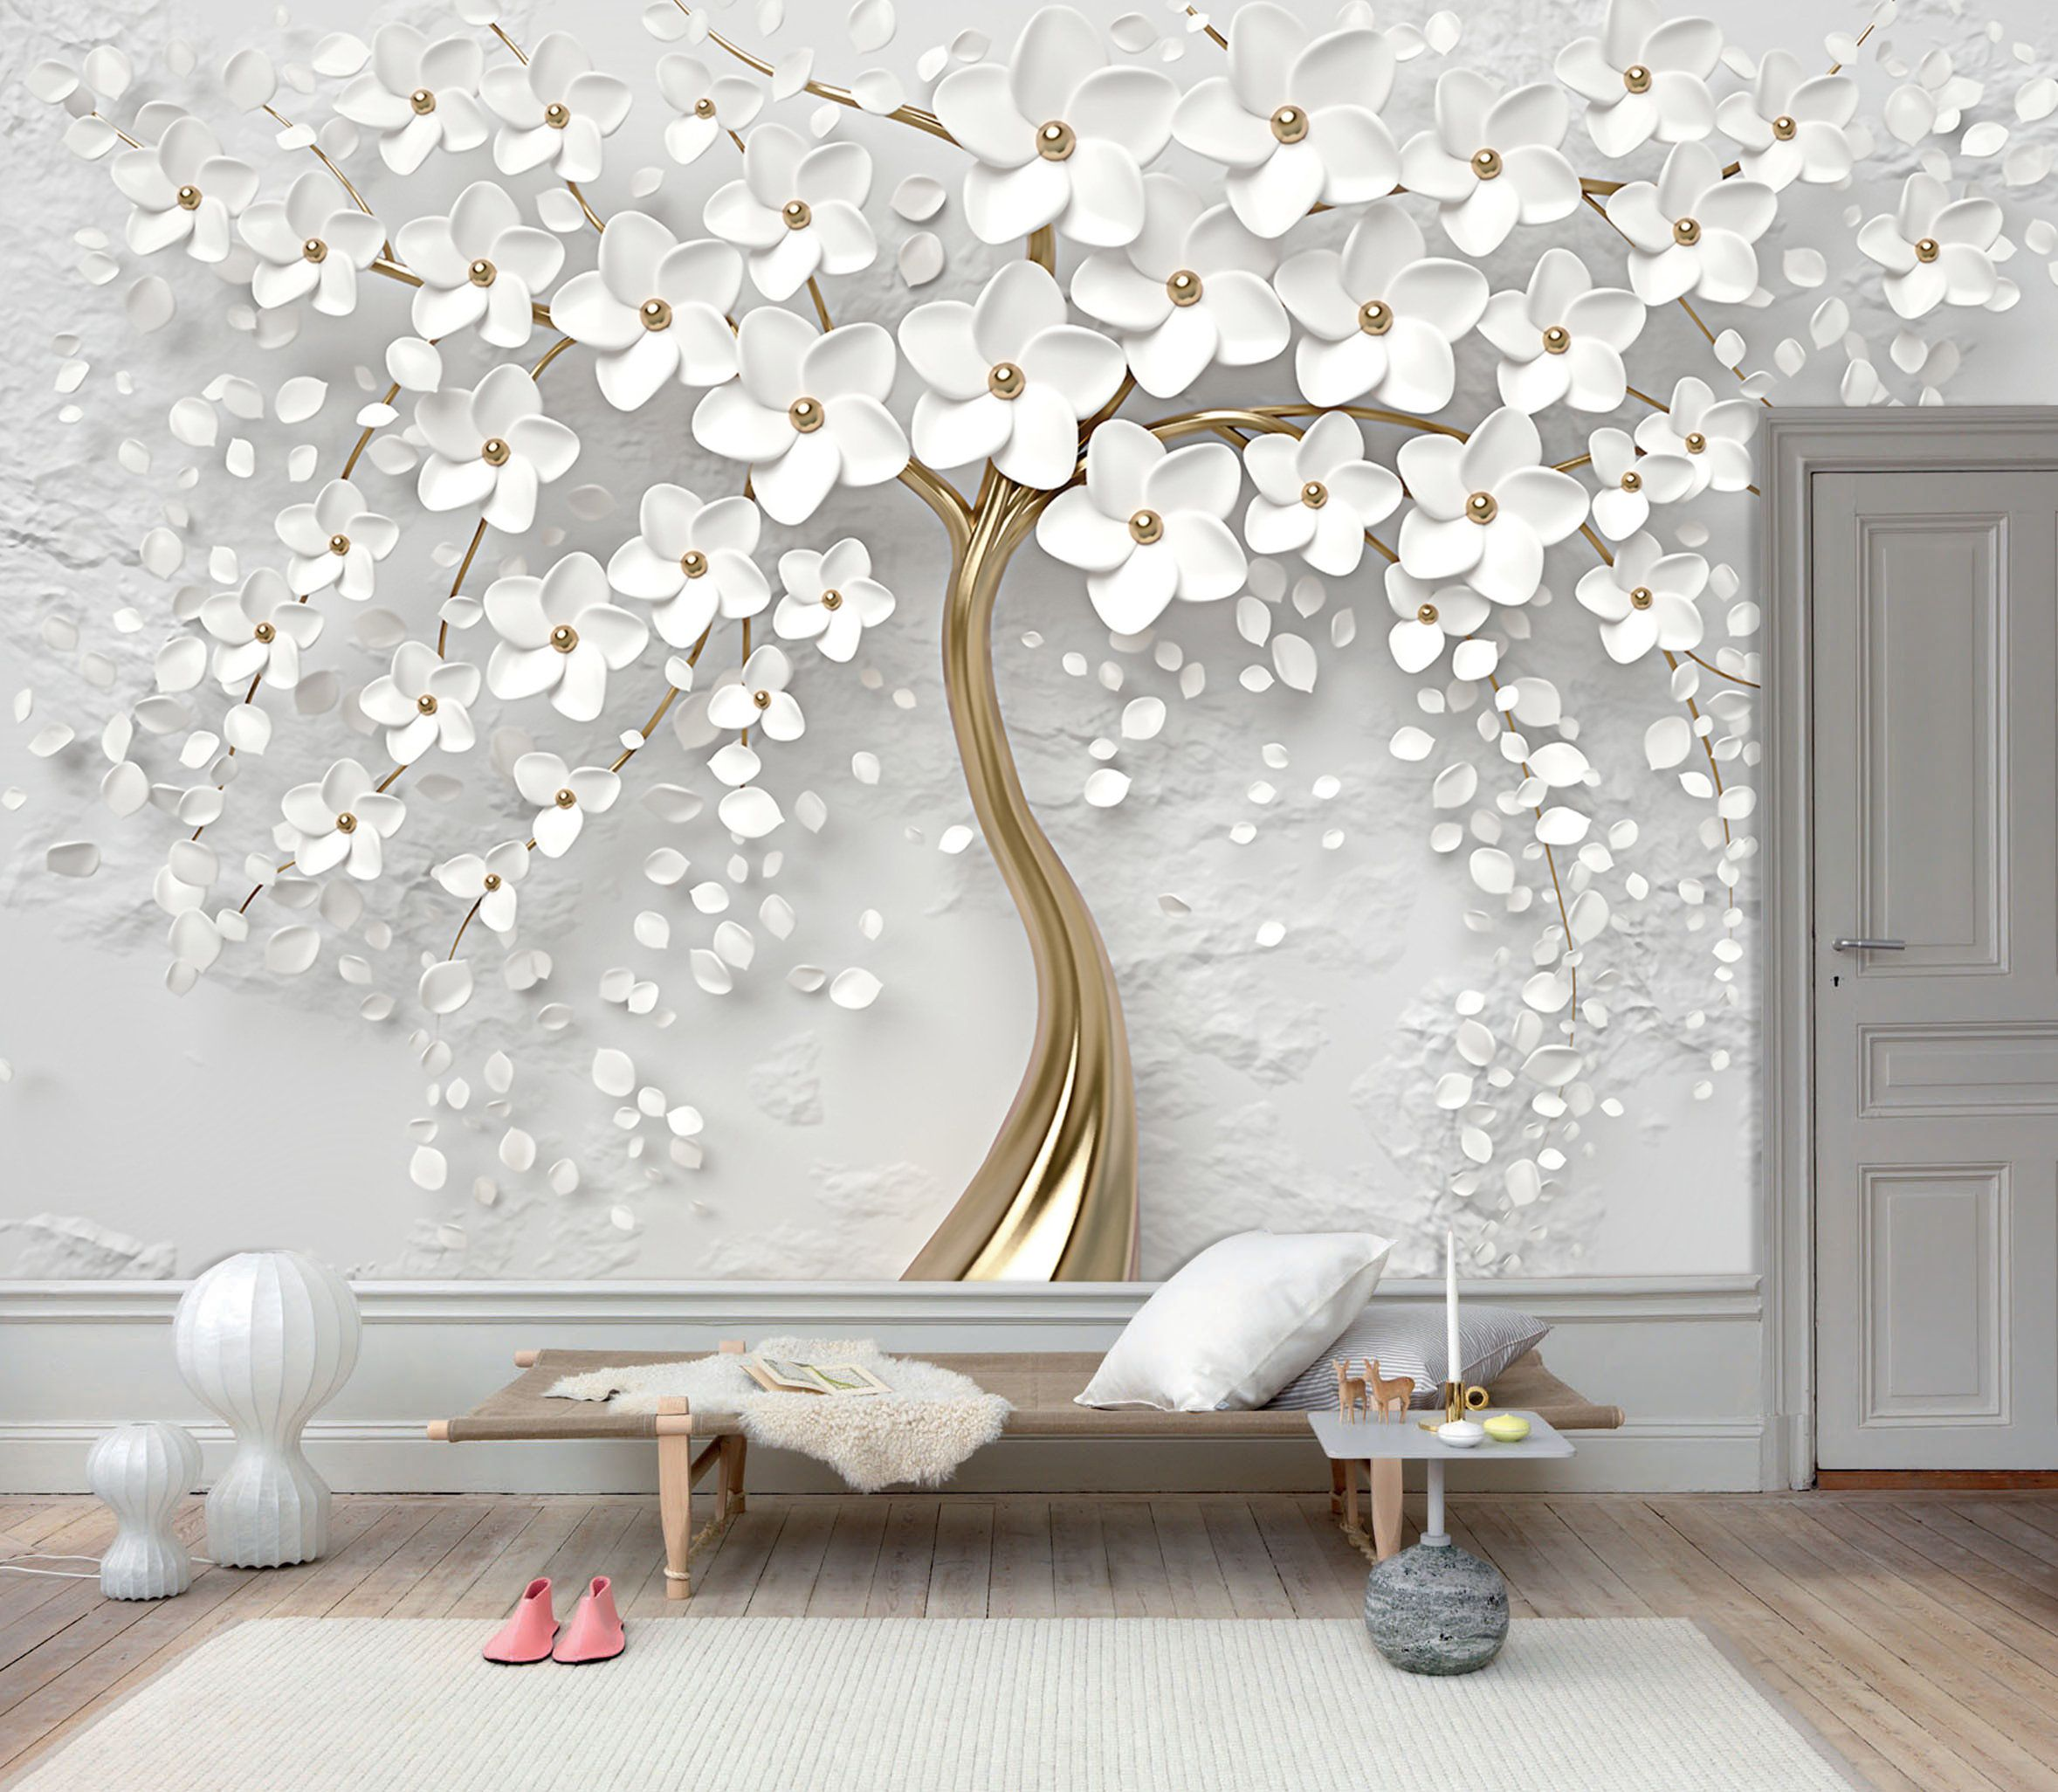 3D Gold Tree Floral, White 3D Floral Wall Mural, Wall Art